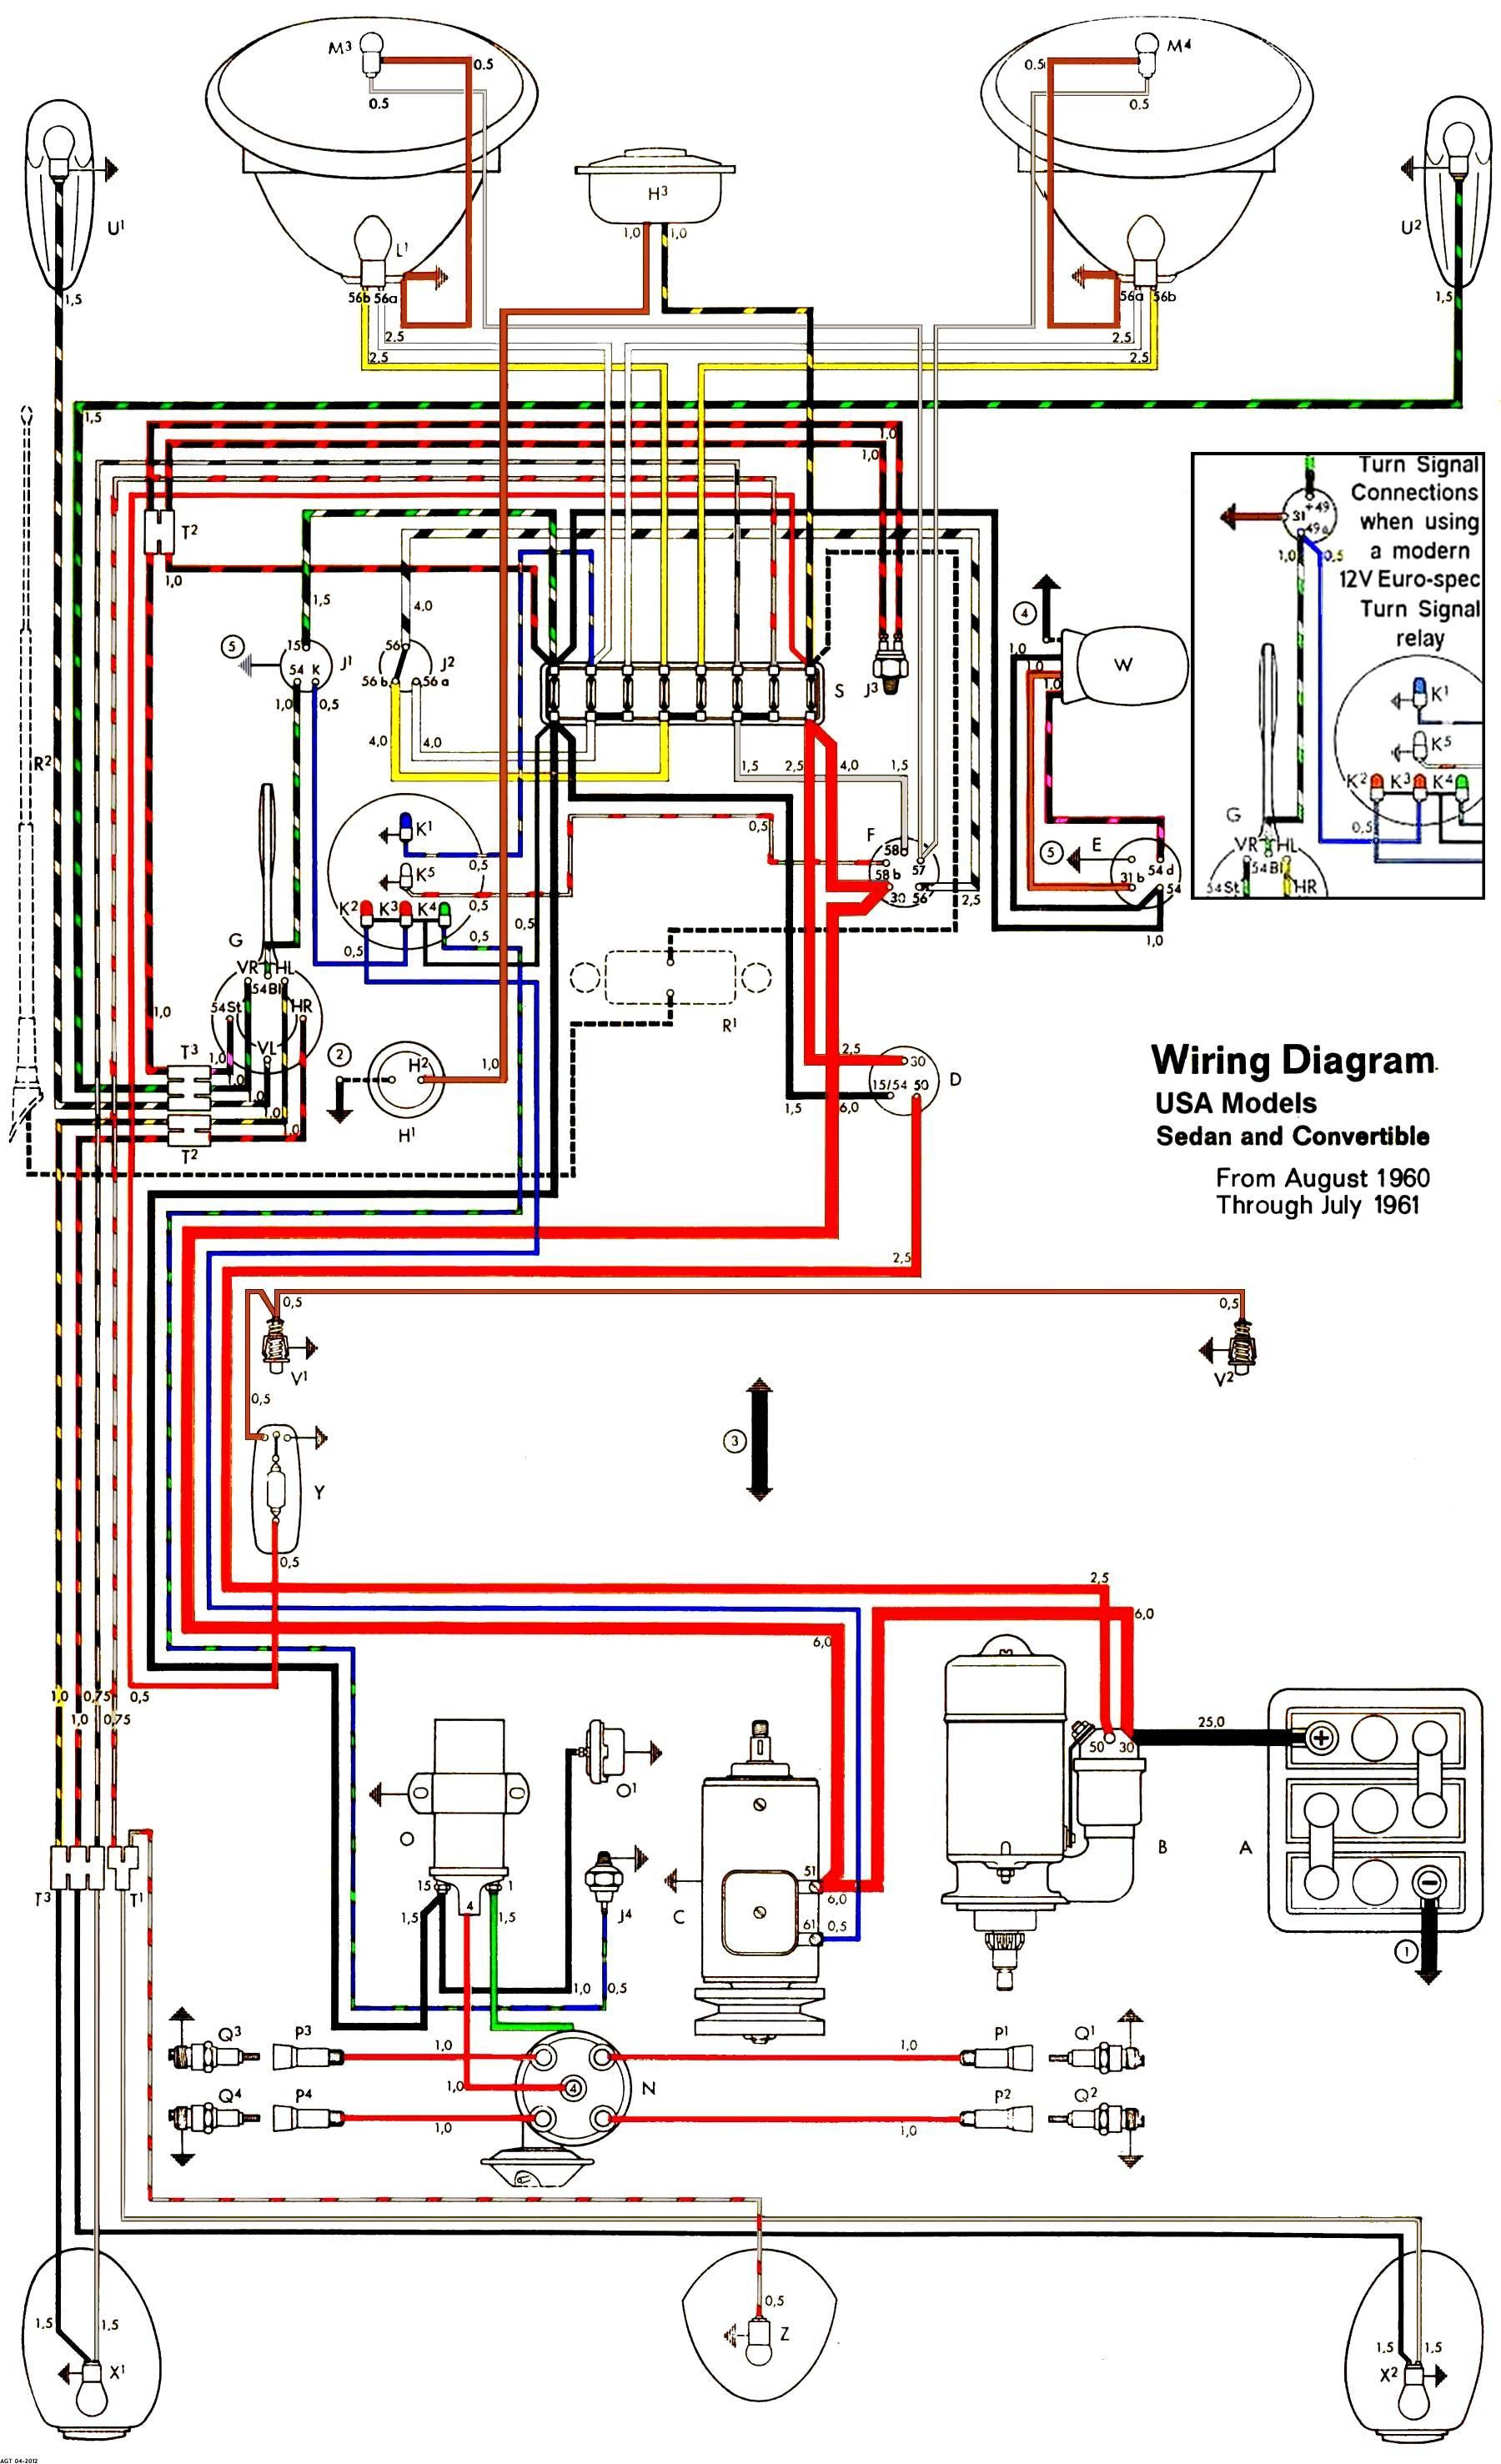 Ford Tail Light Wiring Diagram Vw Beetle Wiring Diagram Light Another Blog About Wiring Diagram • Of Ford Tail Light Wiring Diagram